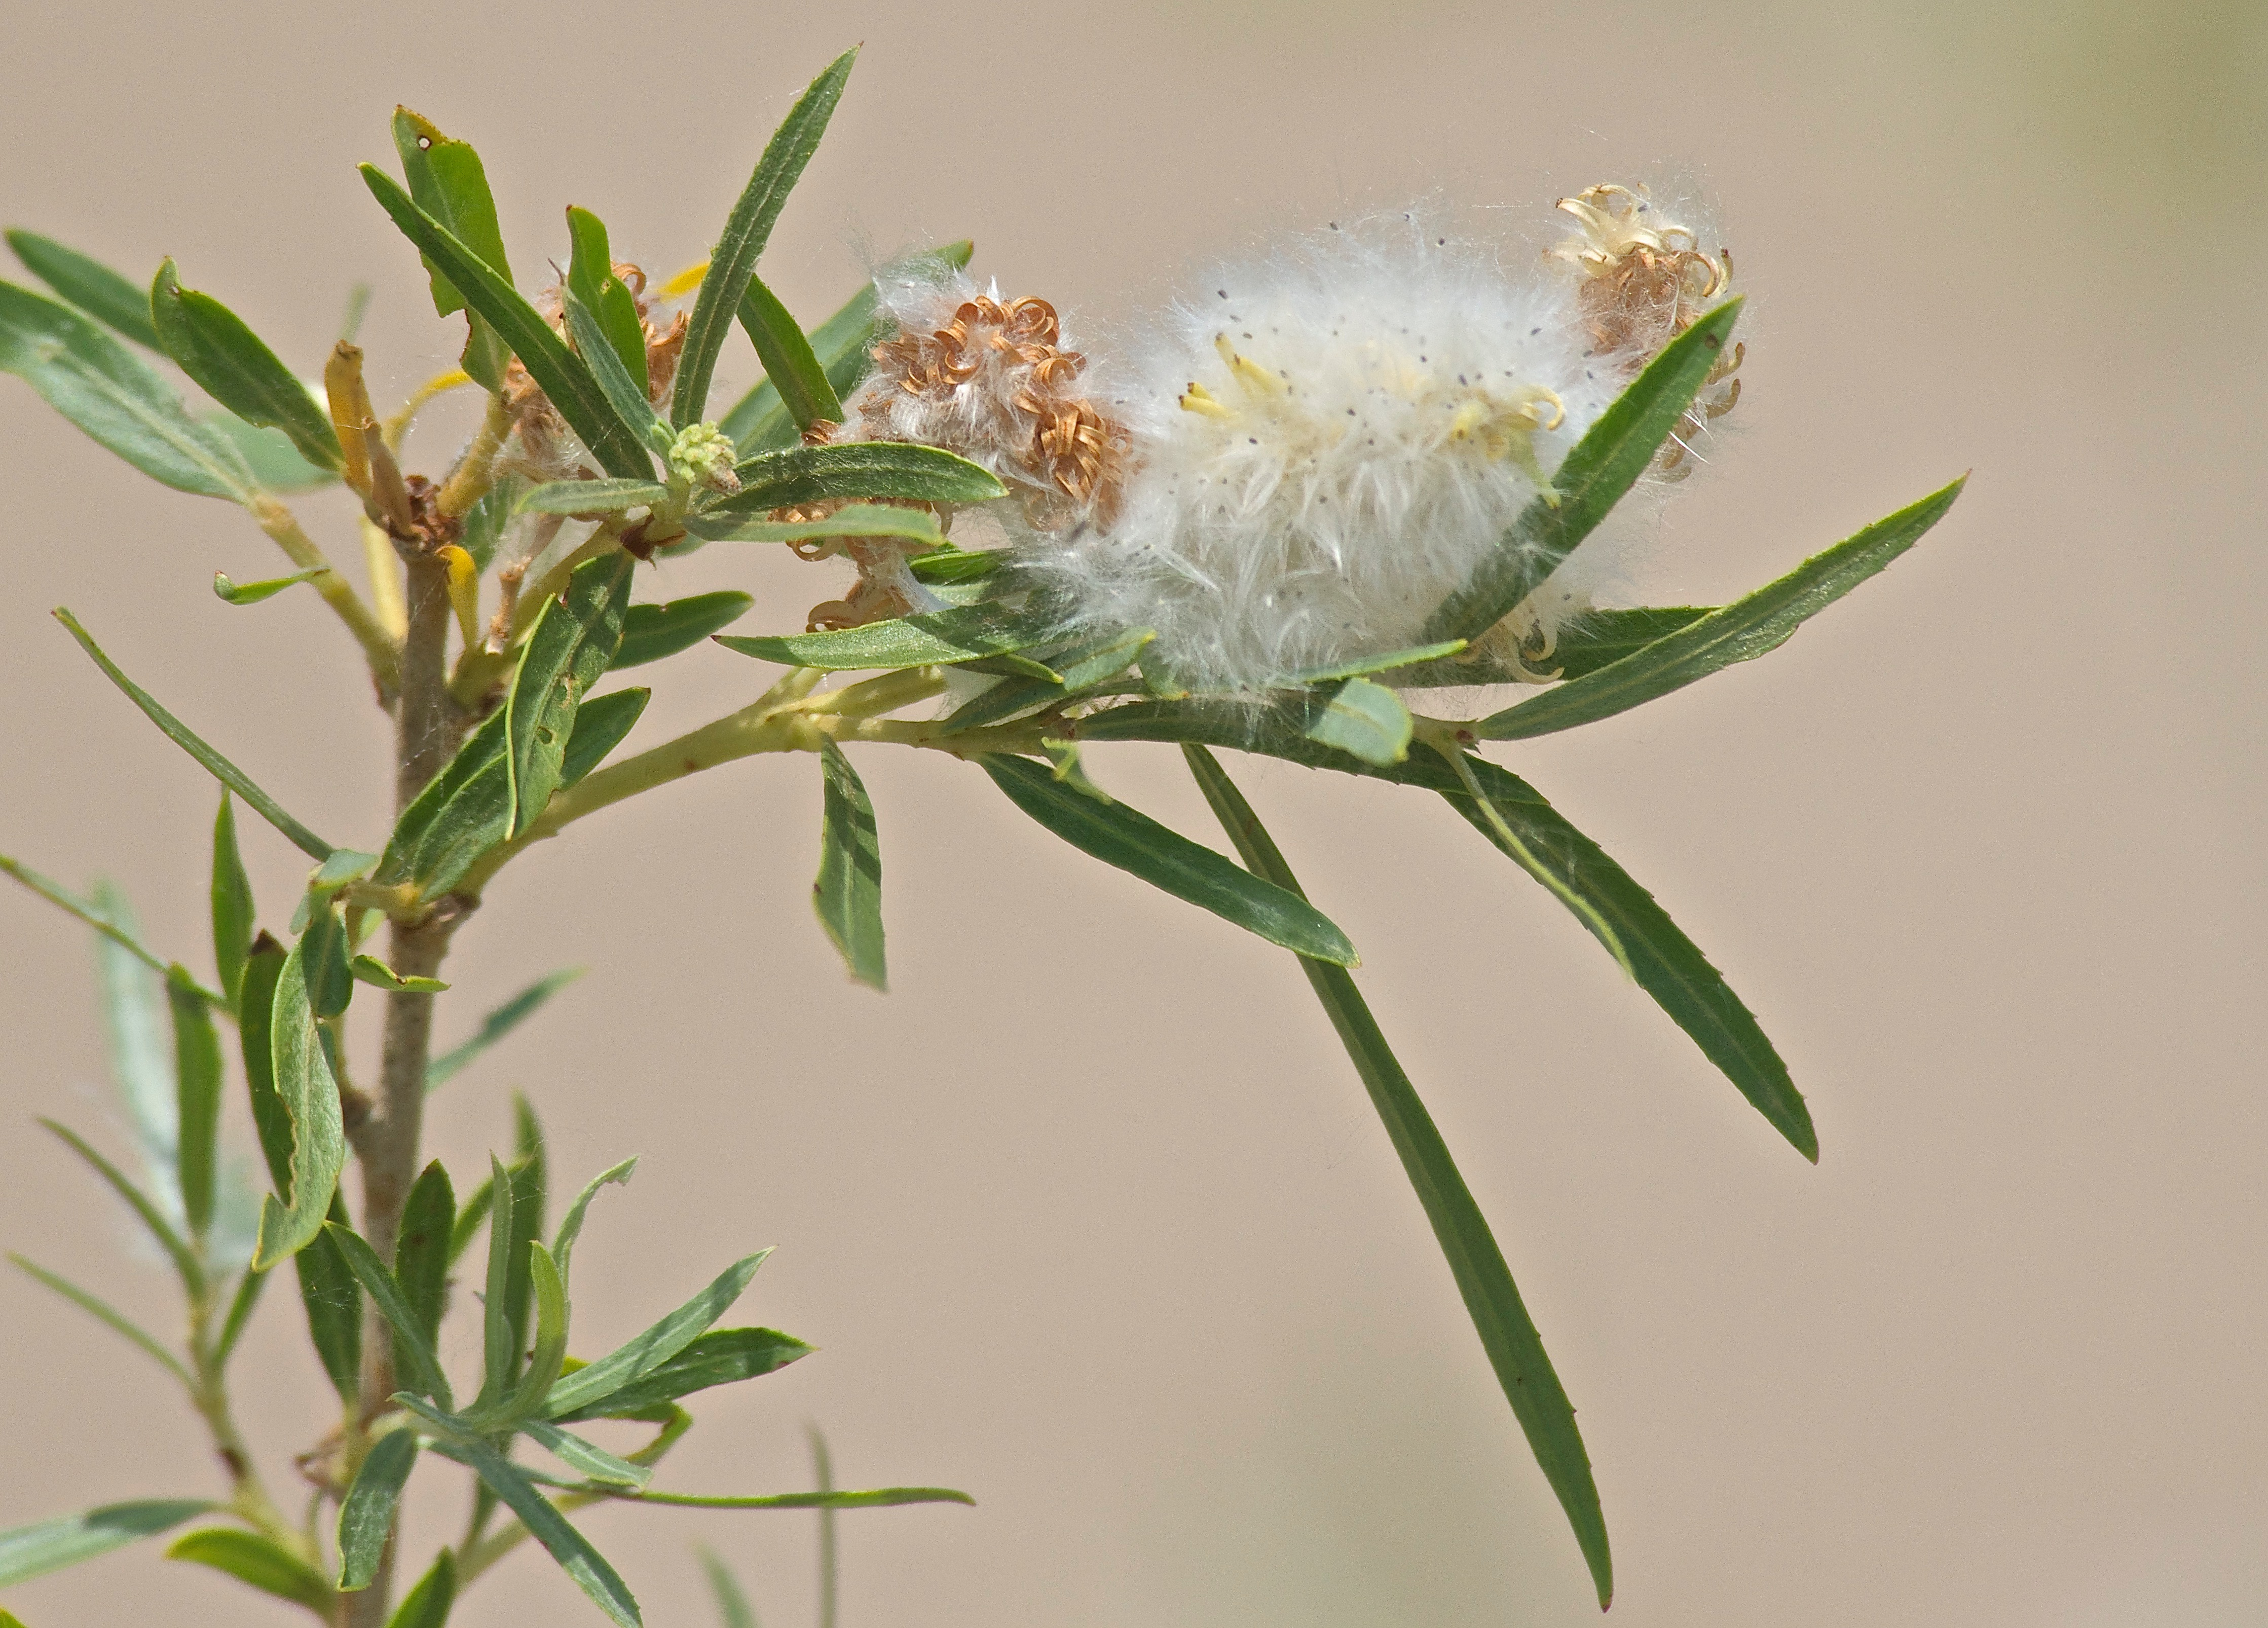 Coyote Willow Catkin